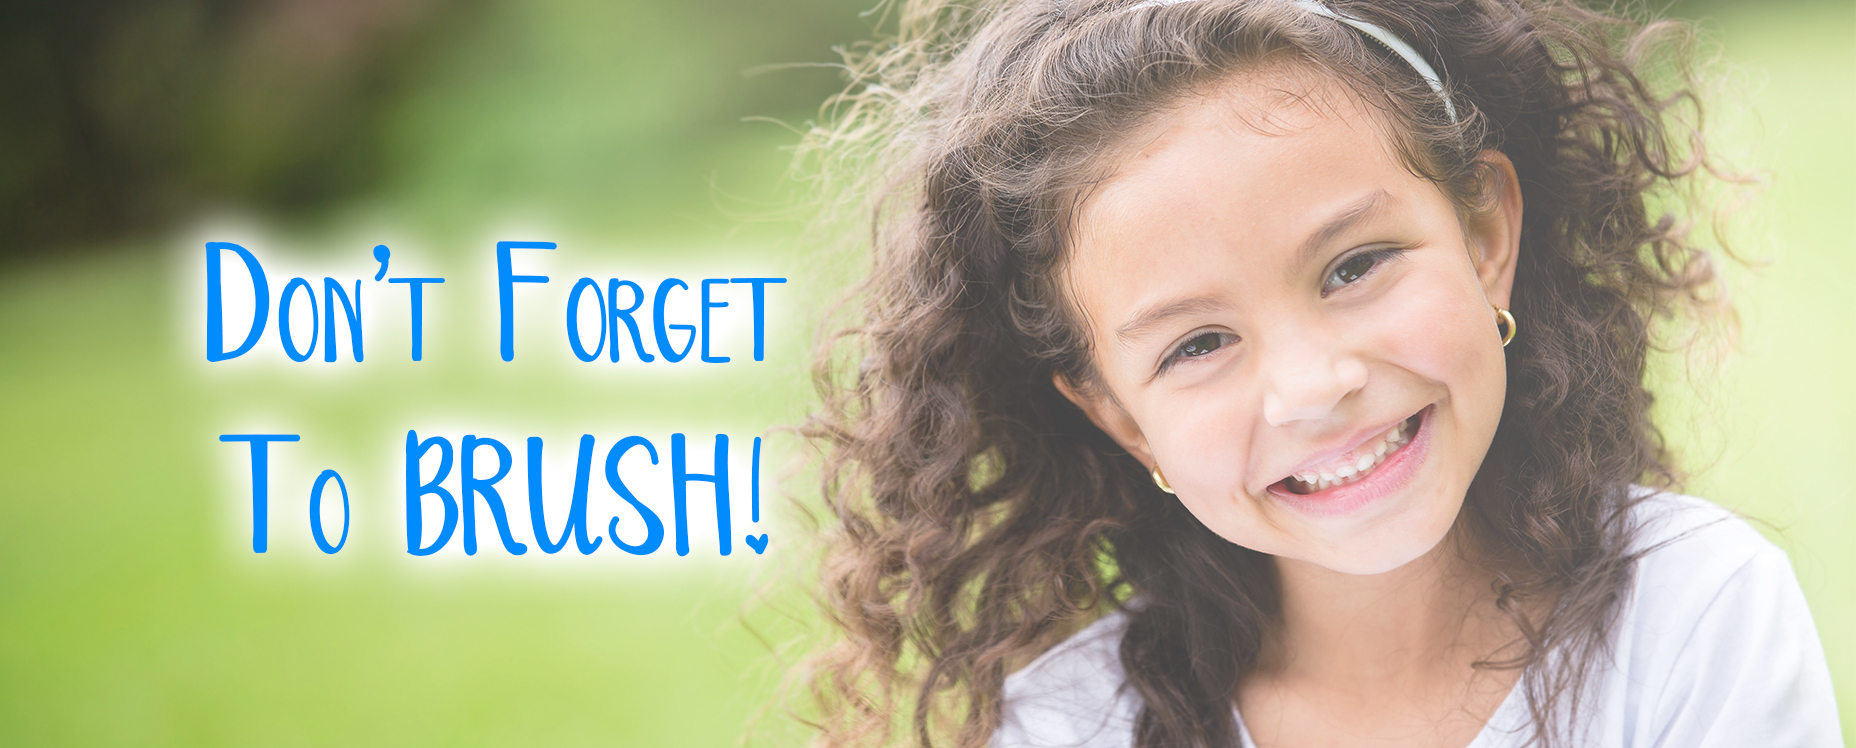 Don't forget to brush!